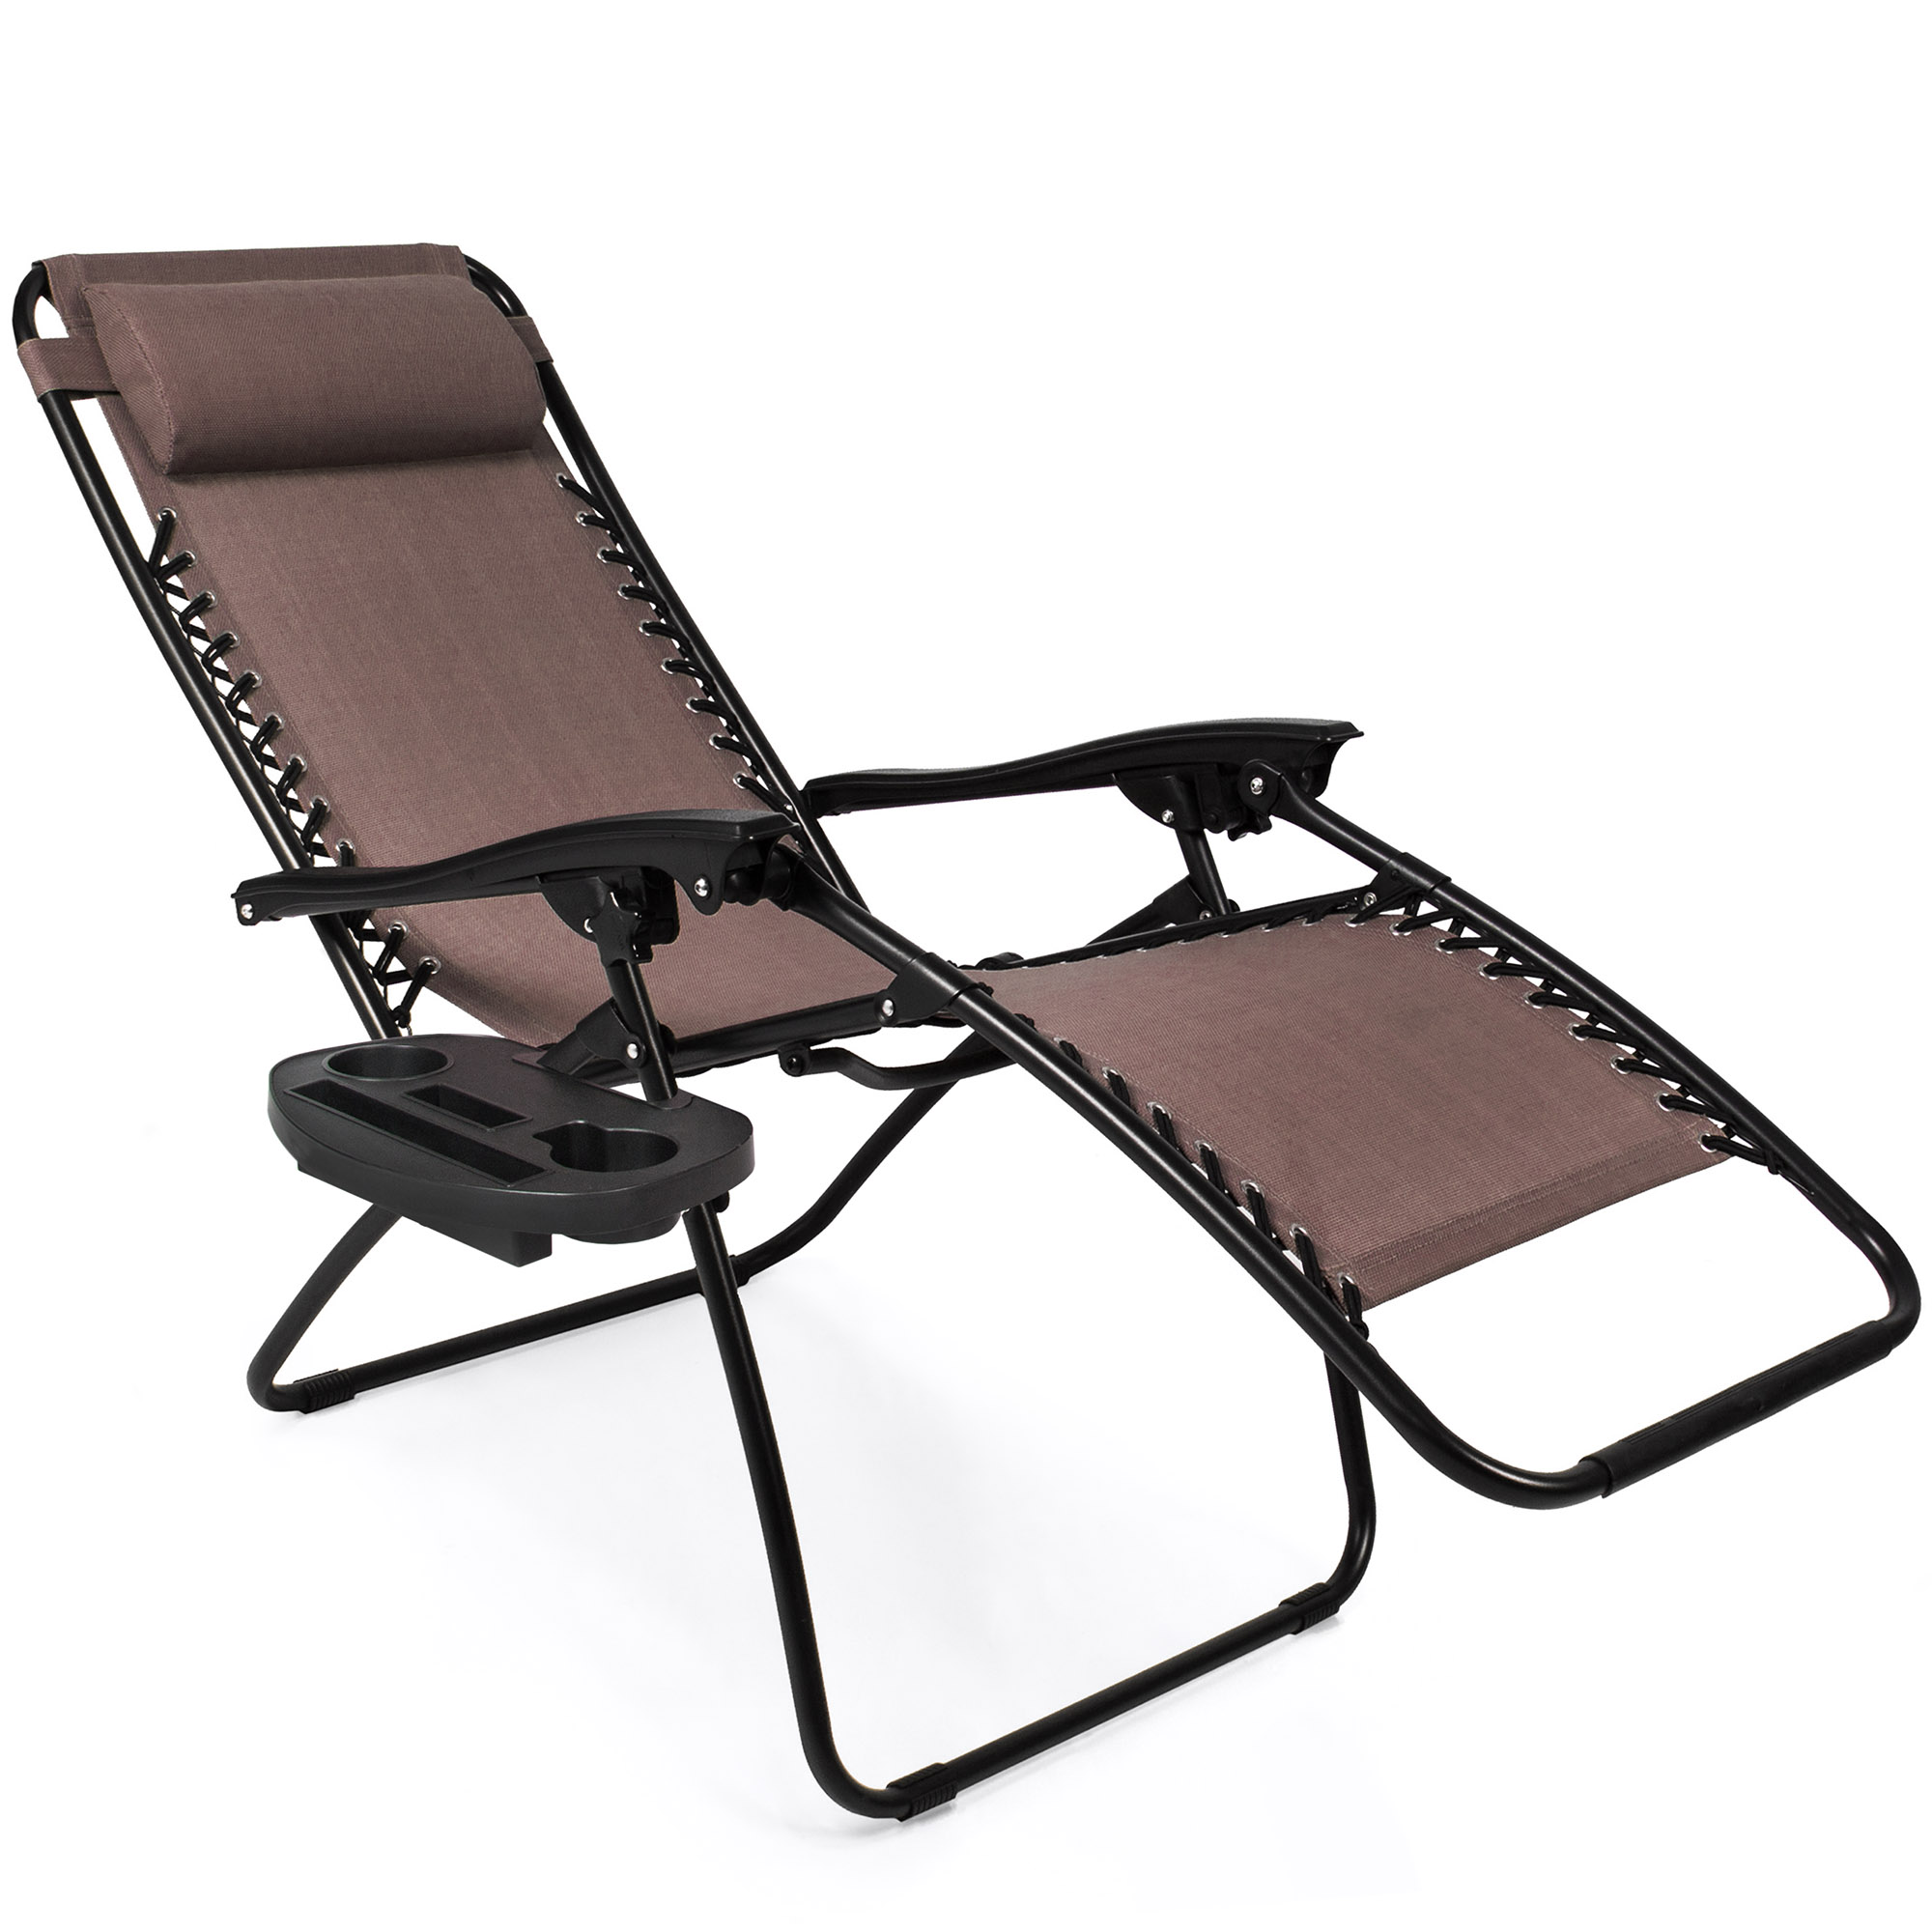 Bcp Set Of 2 Adjustable Zero Gravity Patio Chair Recliners